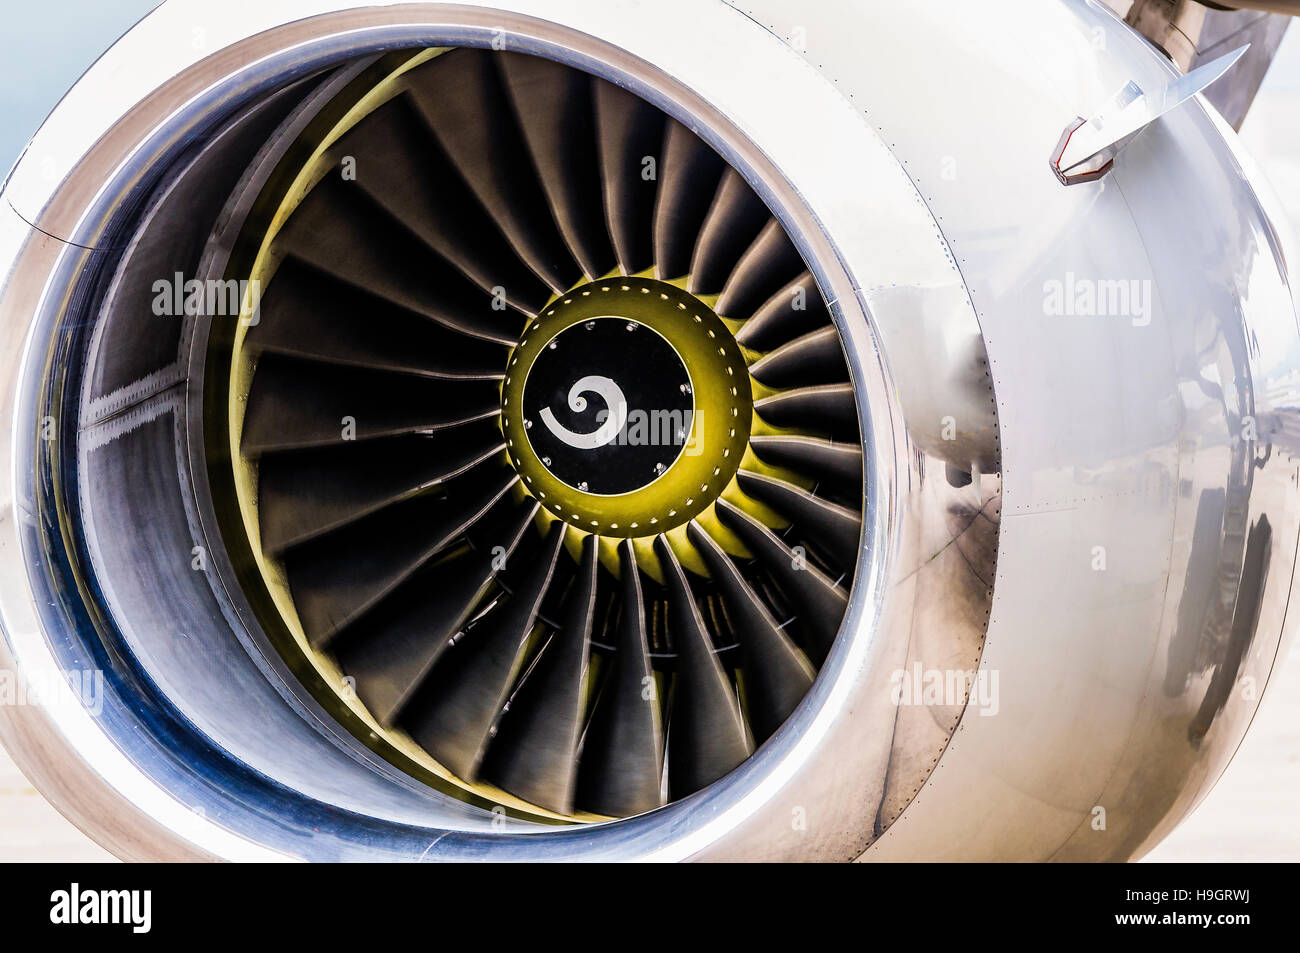 Front engine cowling and turbine blades of the engine of a Boeing 737. - Stock Image